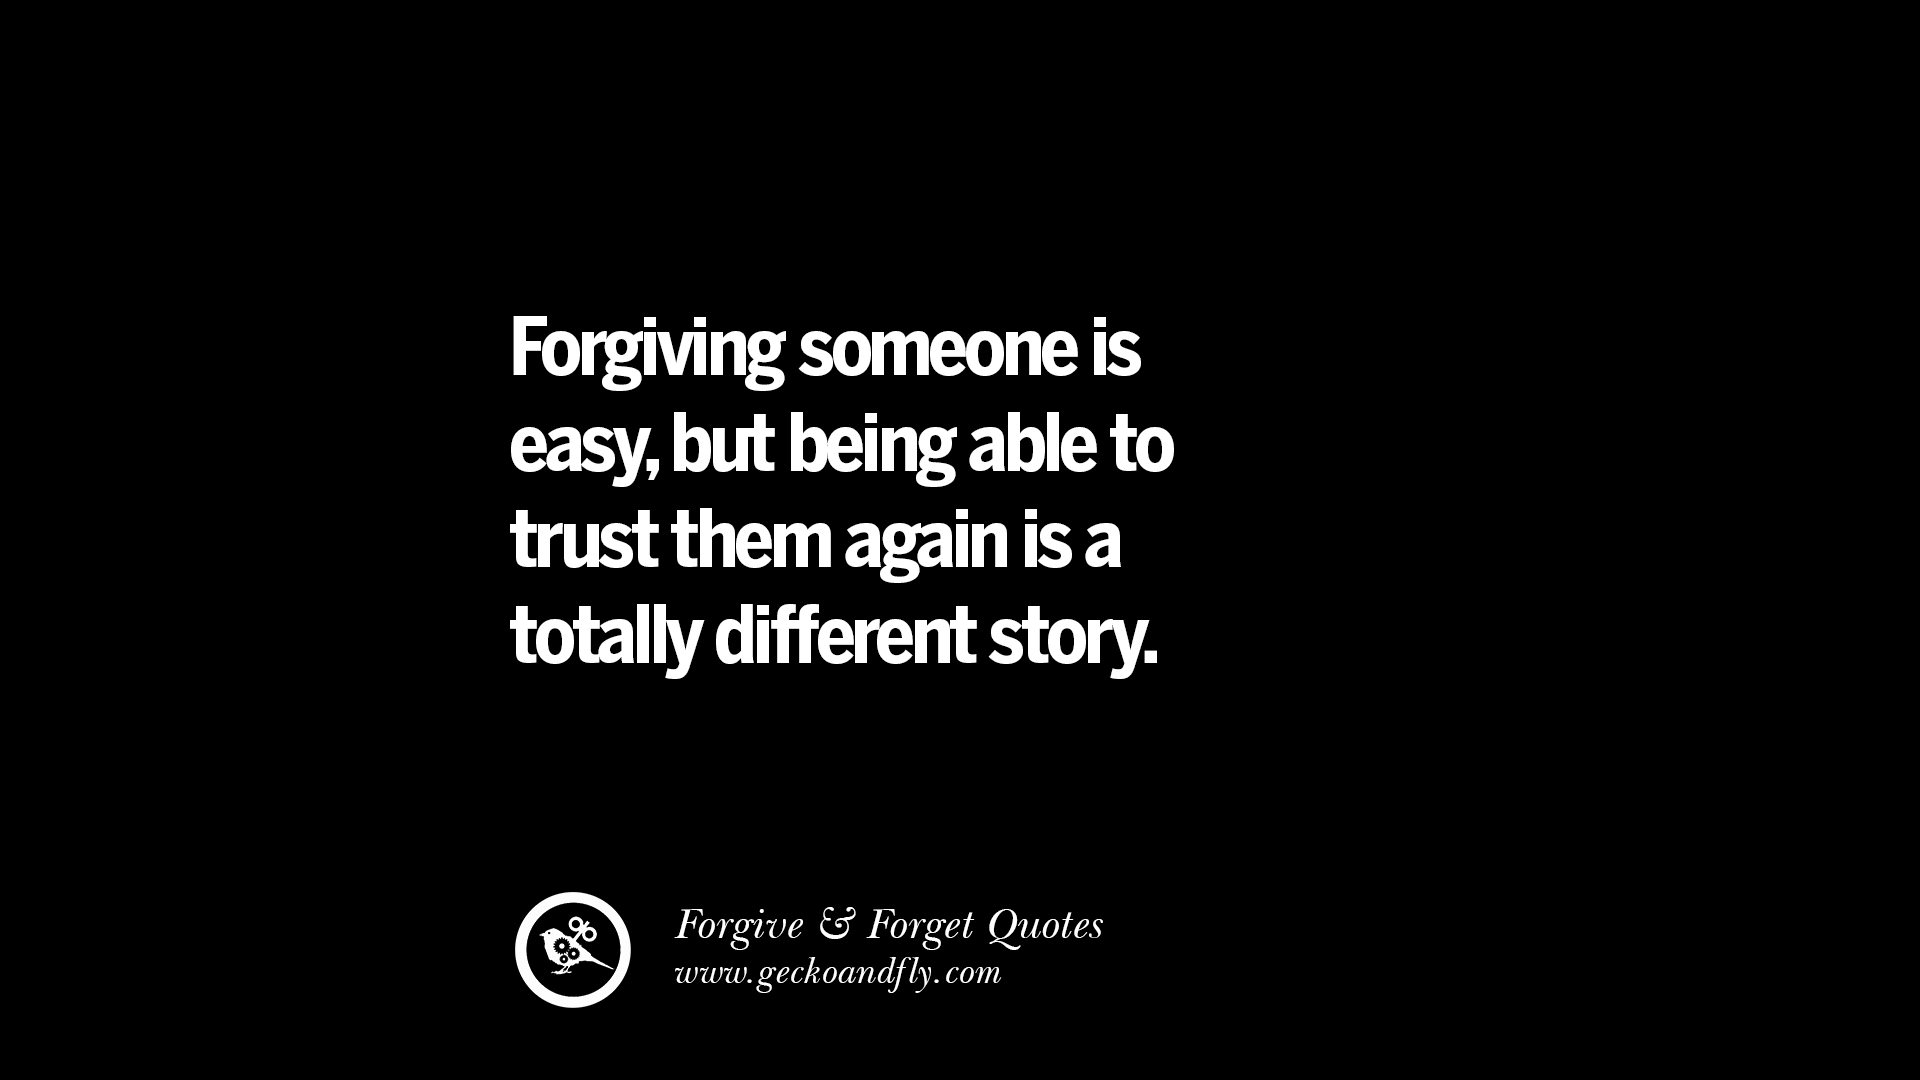 50 Quotes On Apologizing Forgive And Forget After An Argument